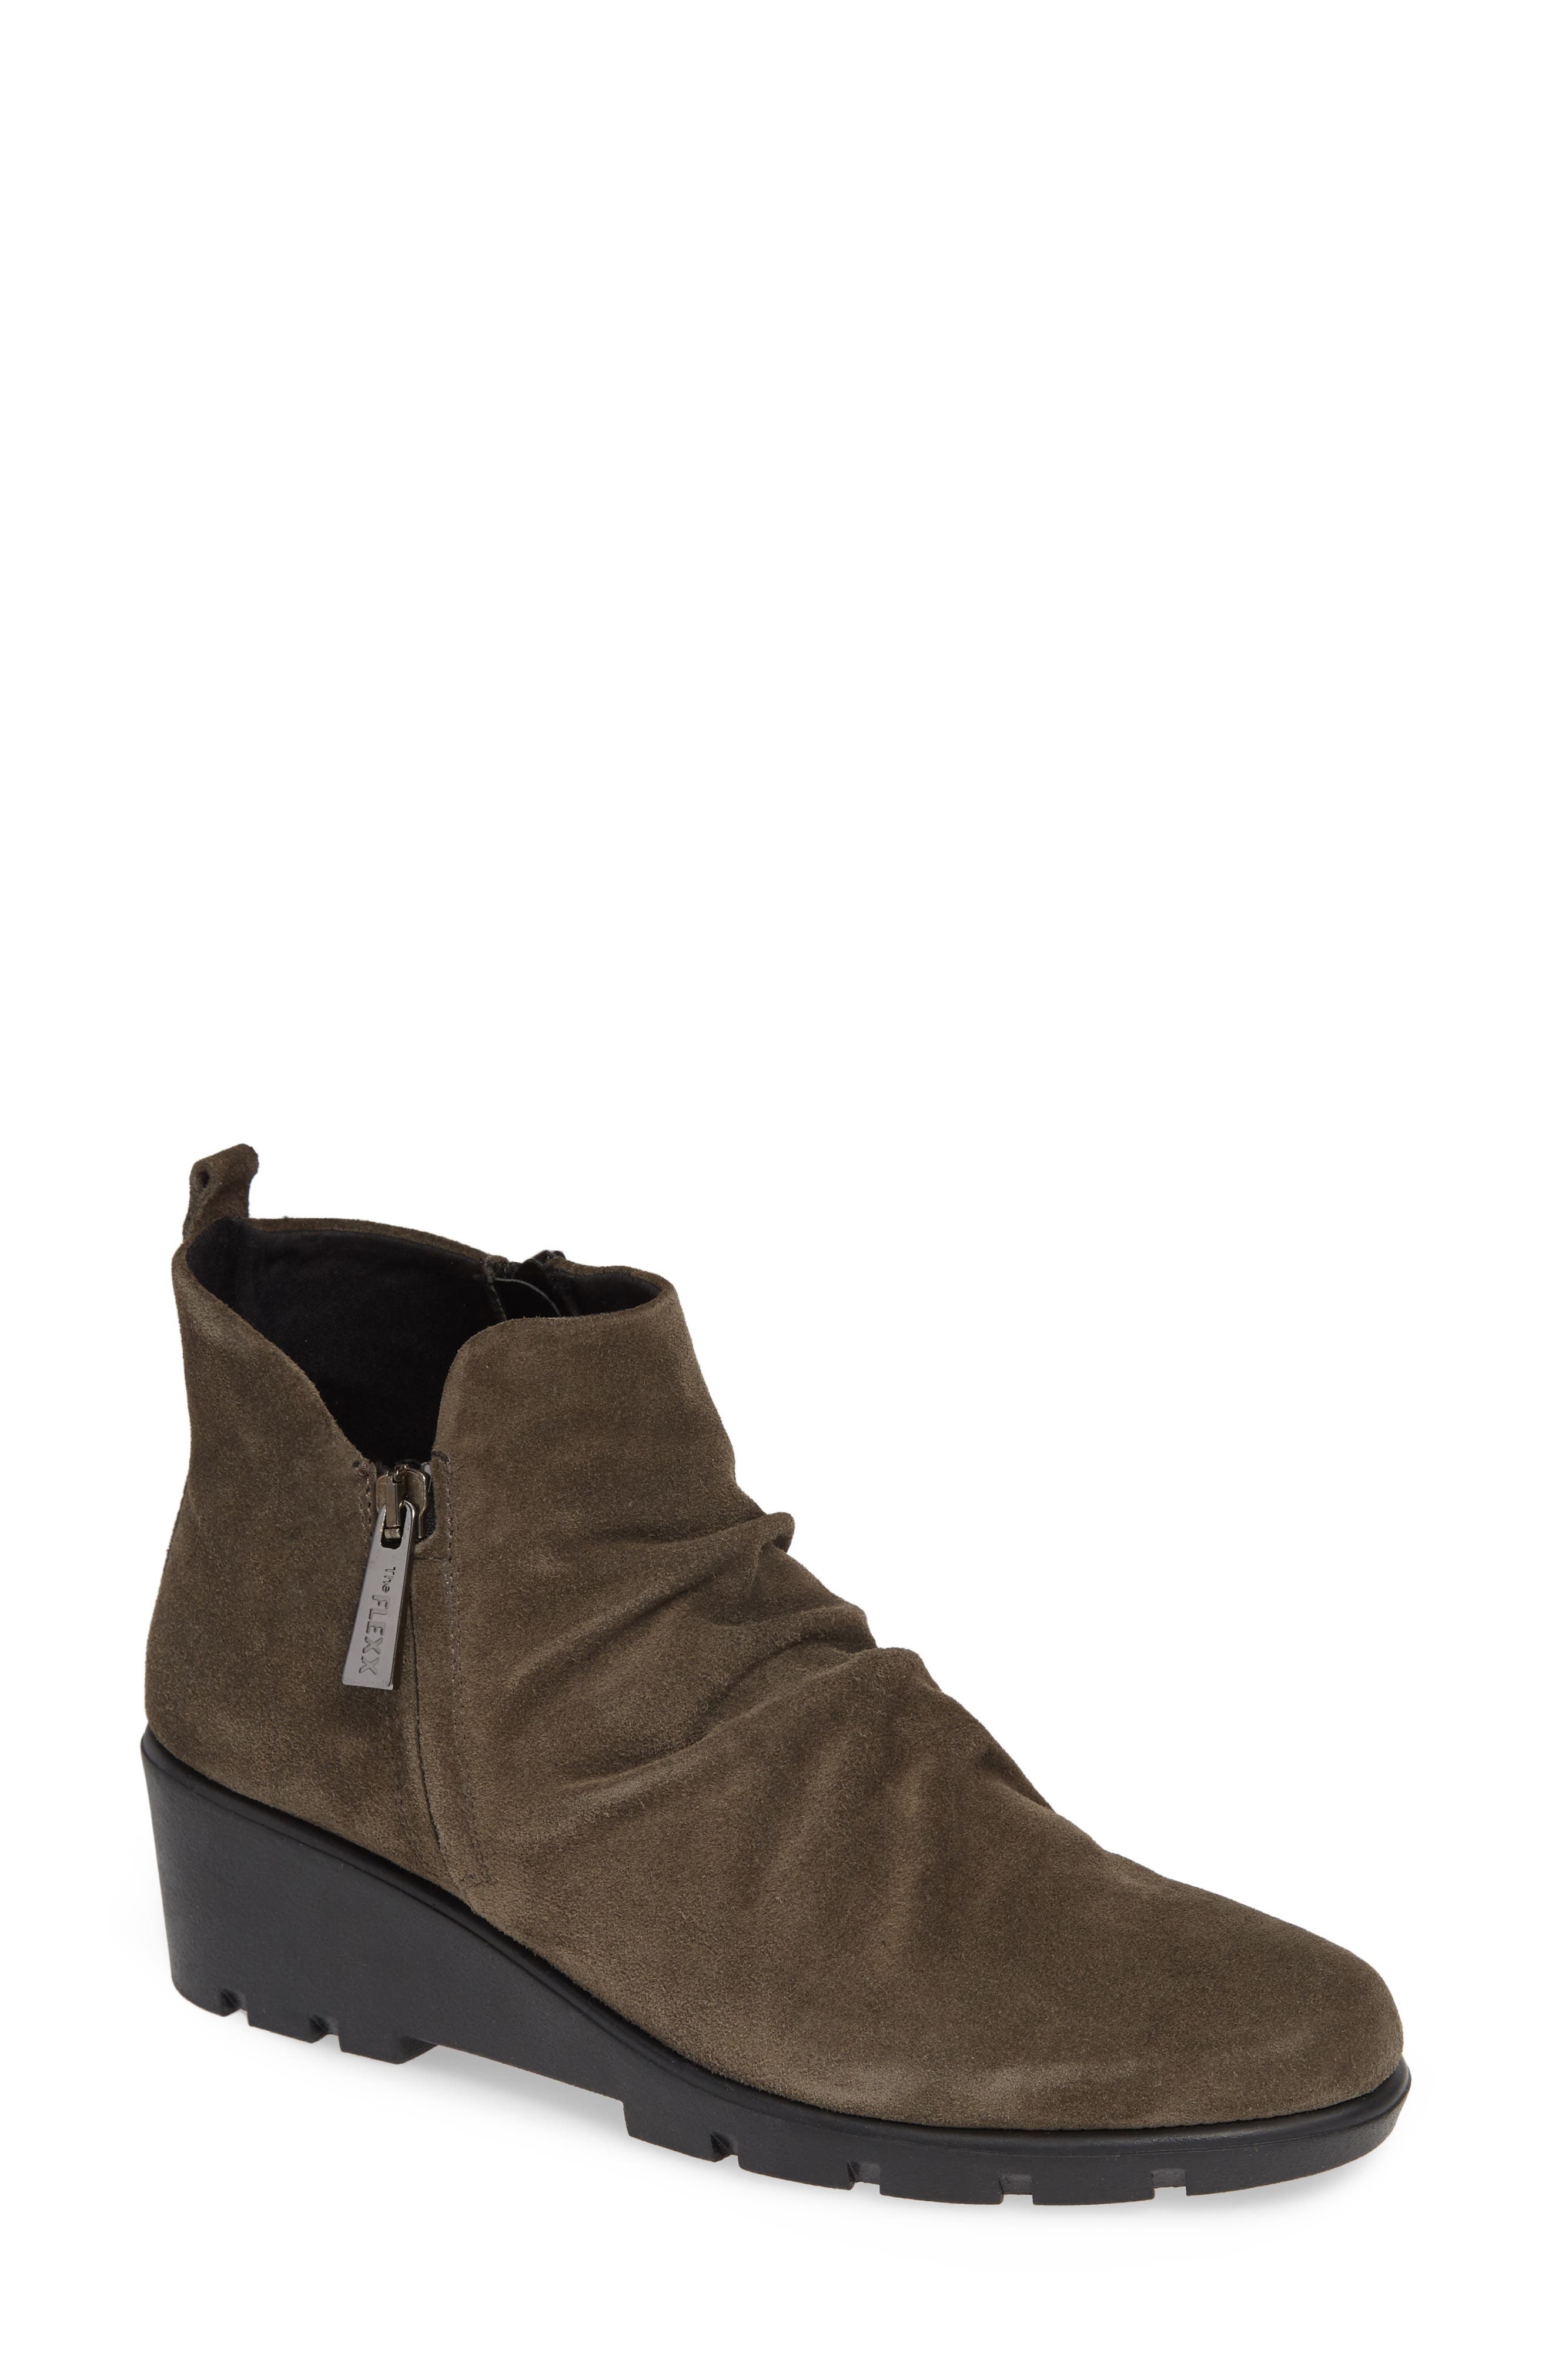 THE FLEXX, Slingshot Ankle Bootie, Main thumbnail 1, color, BROWN SUEDE